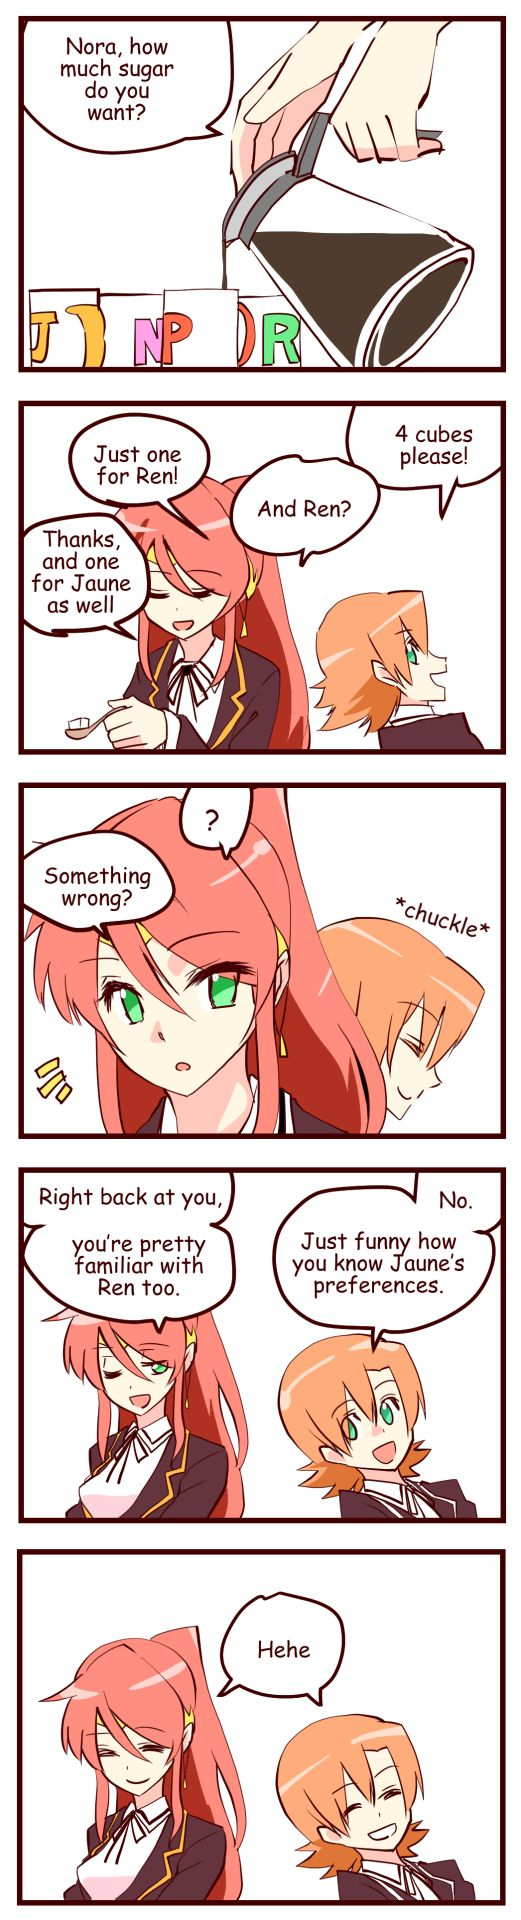 Cloudssj43 edited the English in this comic.No sugar for me.